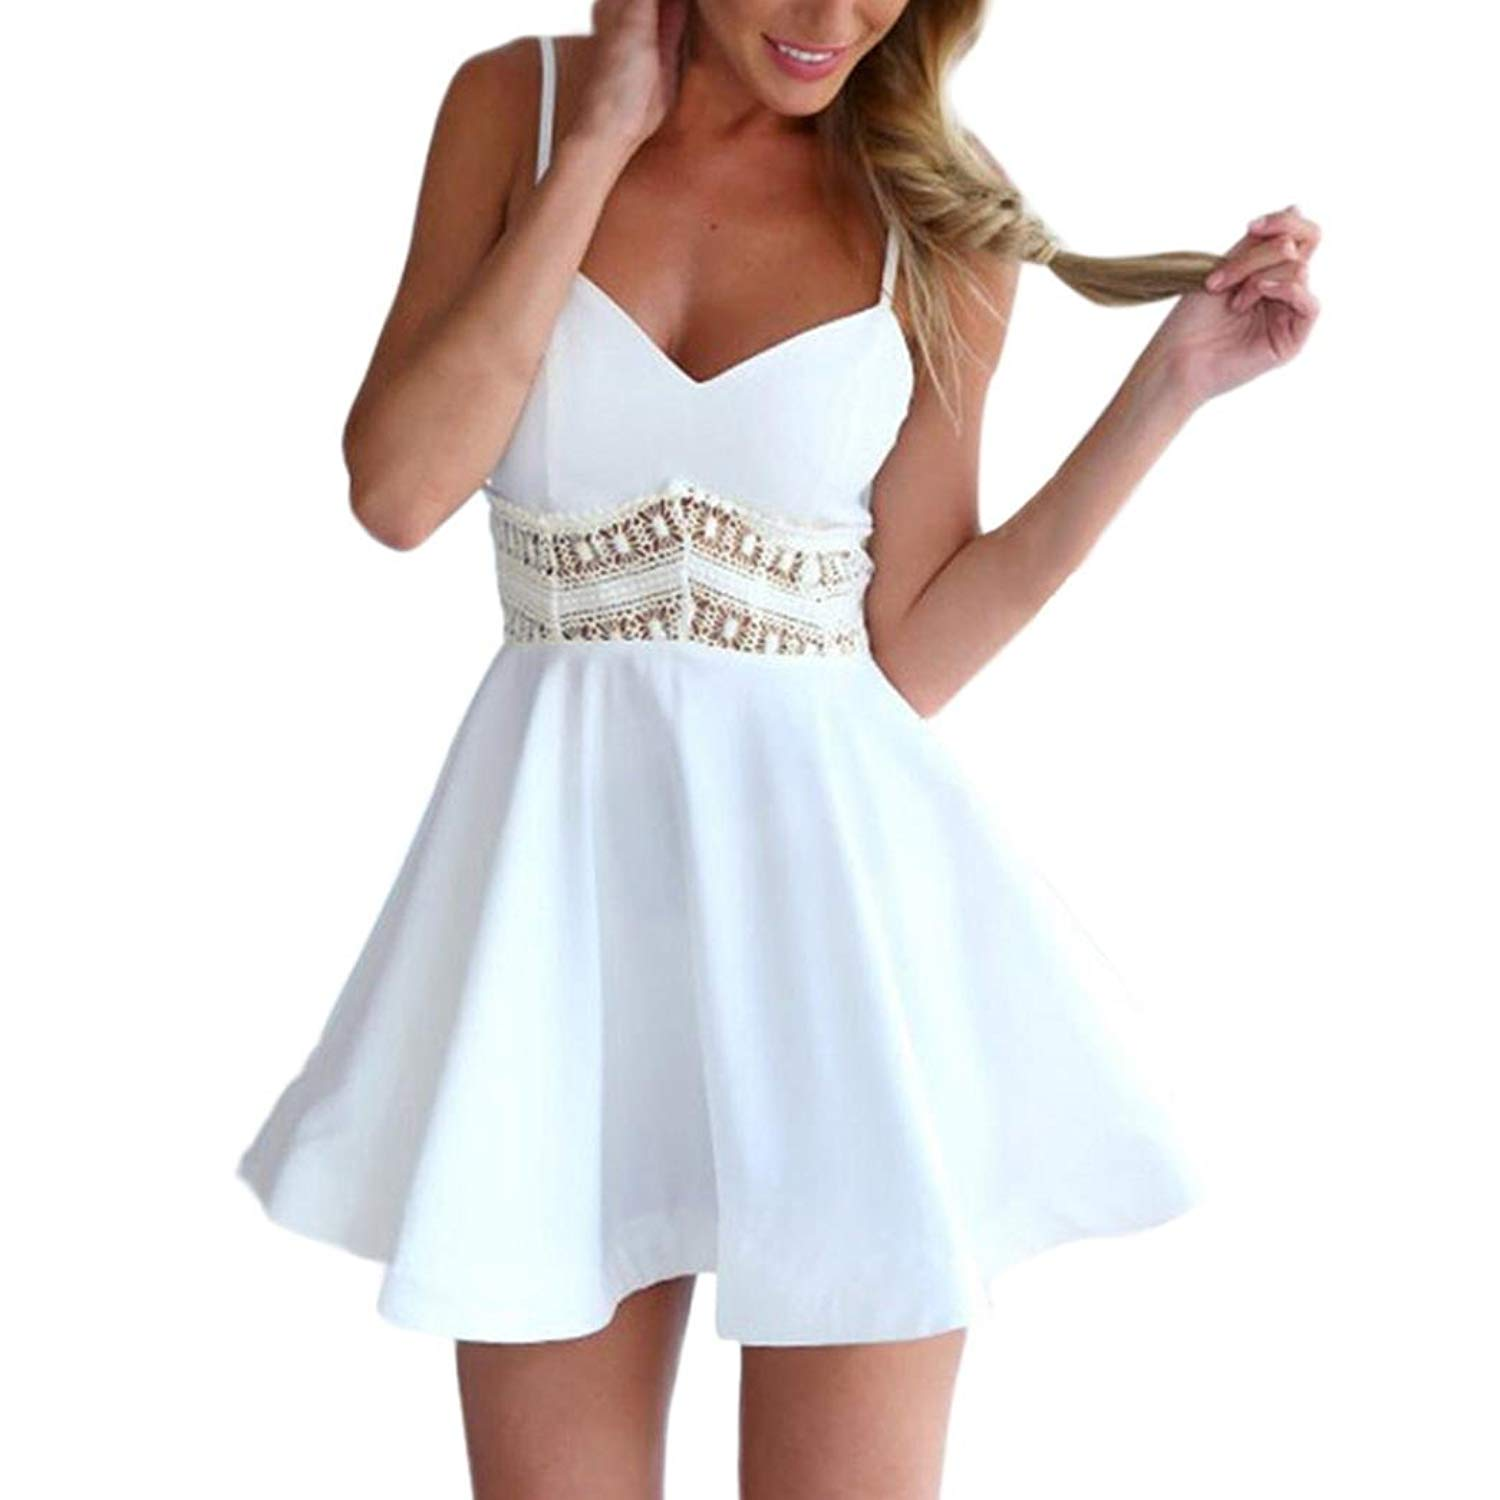 Mini Dress,Women Summer Sleeveless Lace V Neck Sexy Hollowed Dress Ladies Dress